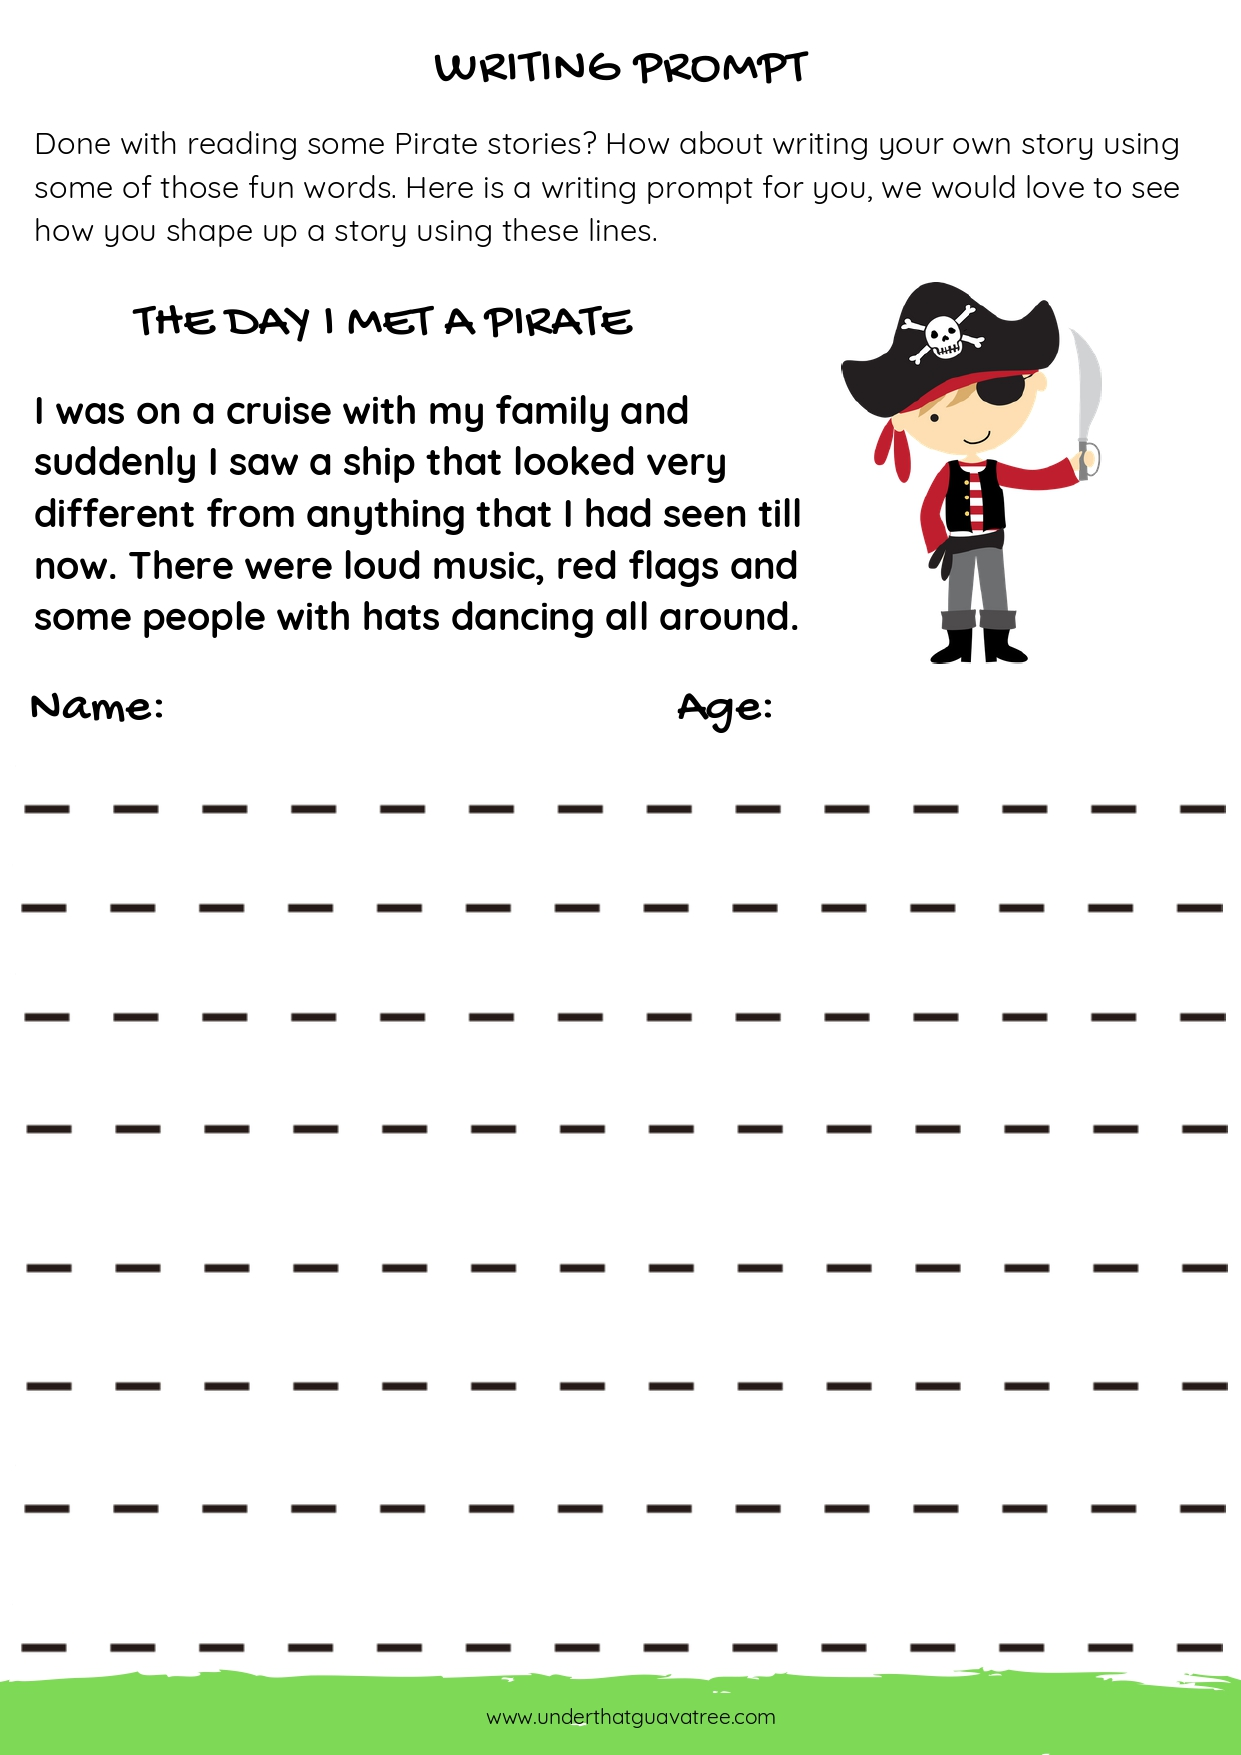 Kiddingly - Pirates By Kiddingly page 0013